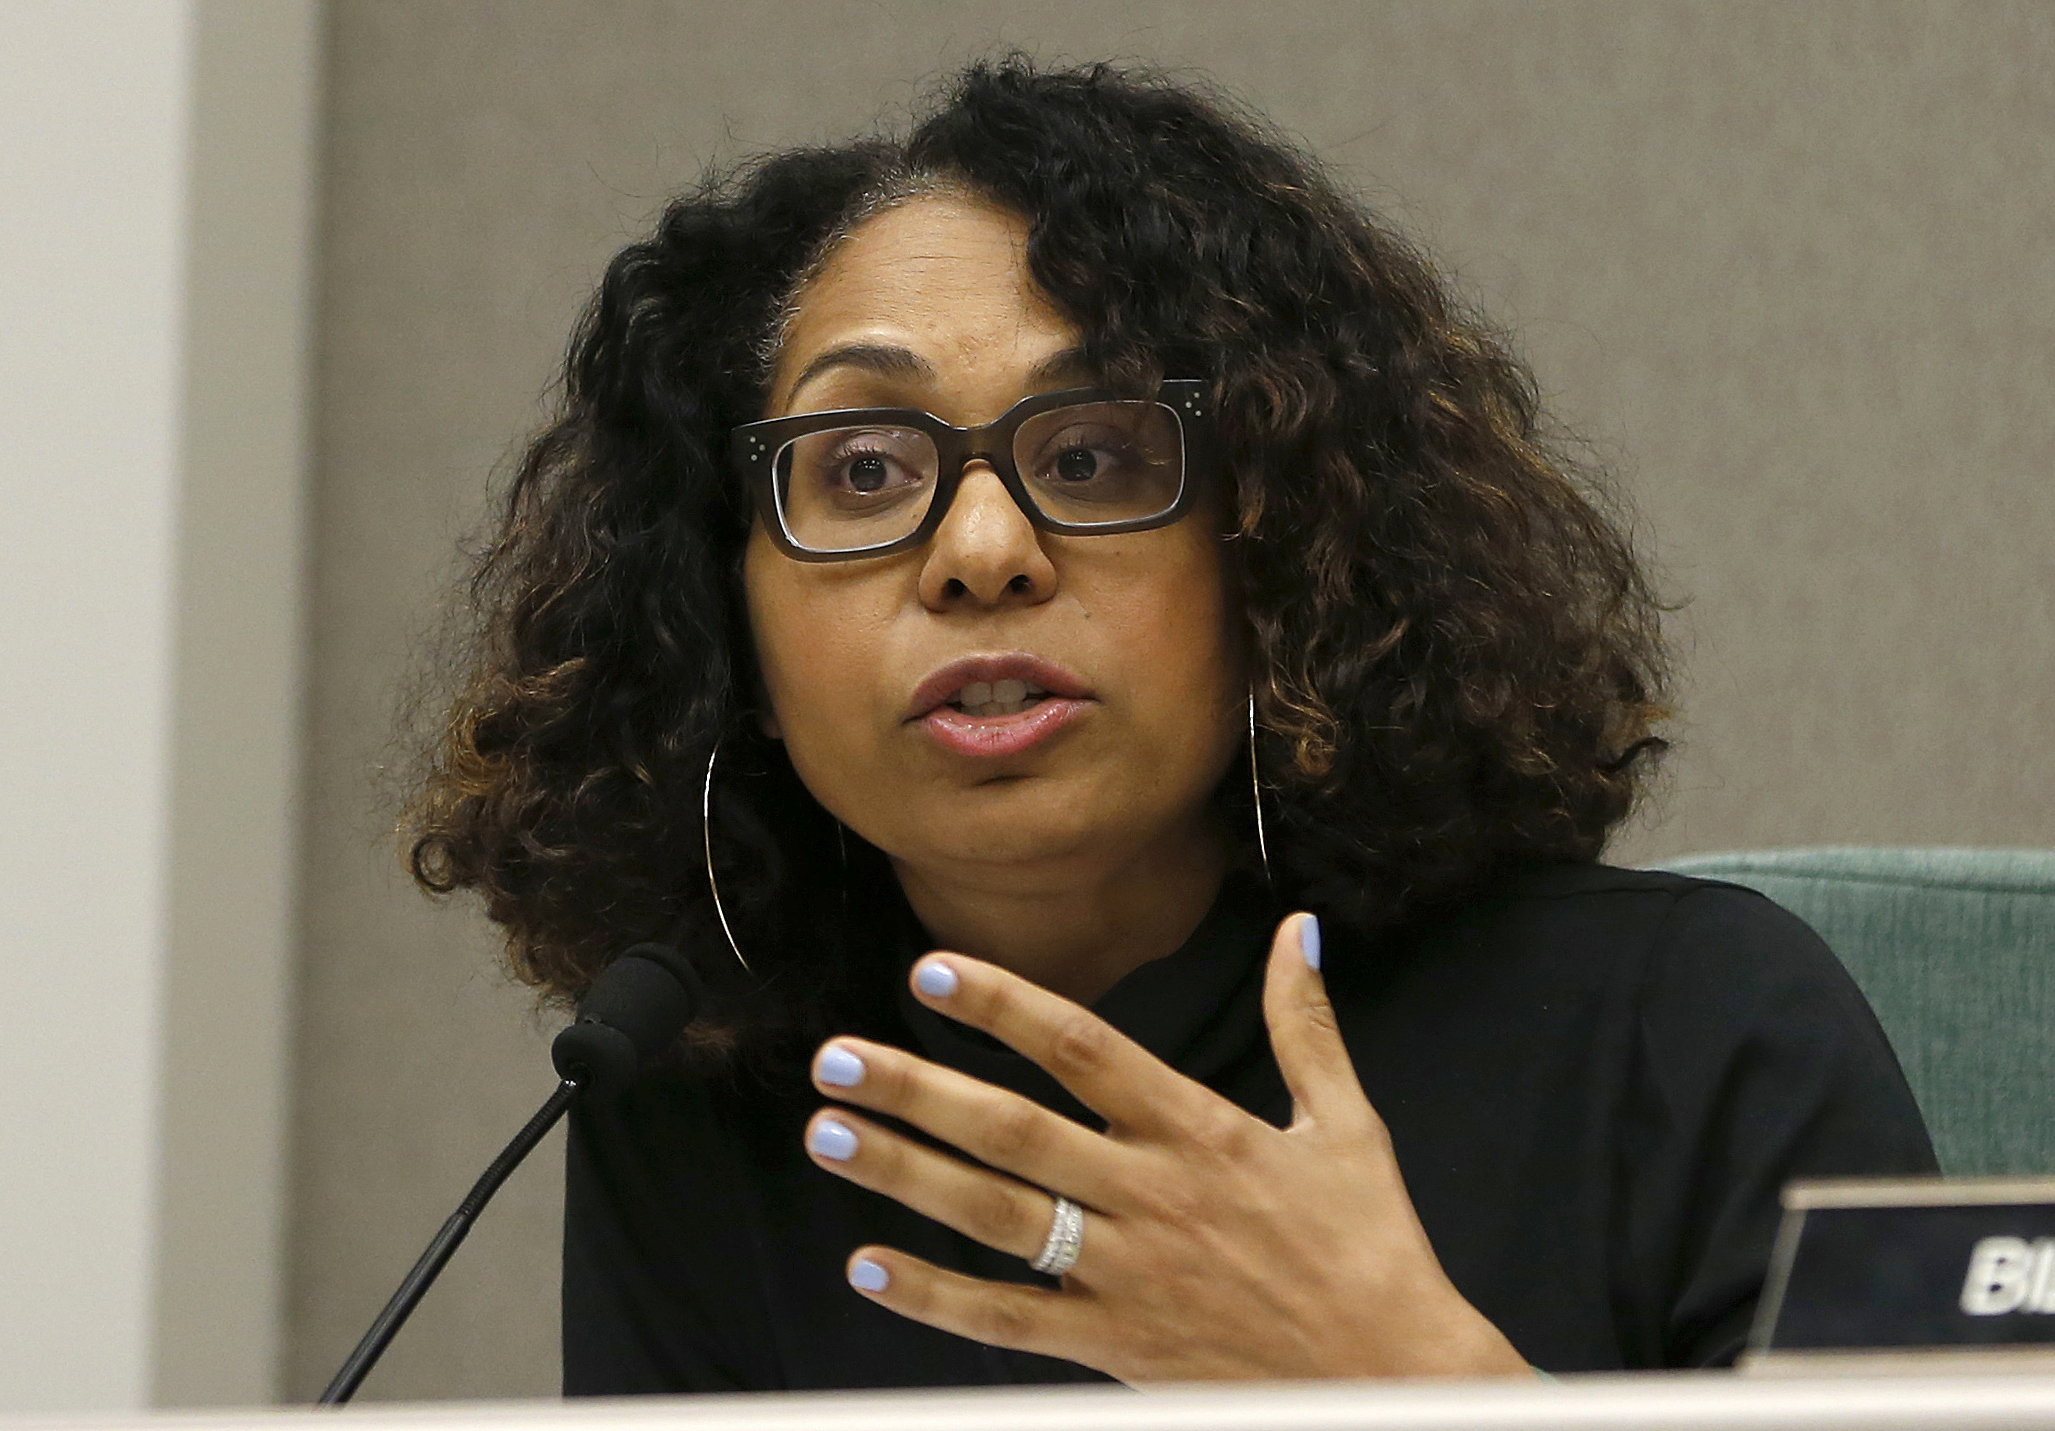 In this April 9, 2019, file photo, Assemblywoman Sydney Kamlager D-Los Angeles, a member of the Assembly Public Safety Committee, gestures during a hearing in Sacramento, Calif. (AP Photo/Rich Pedroncelli, File)